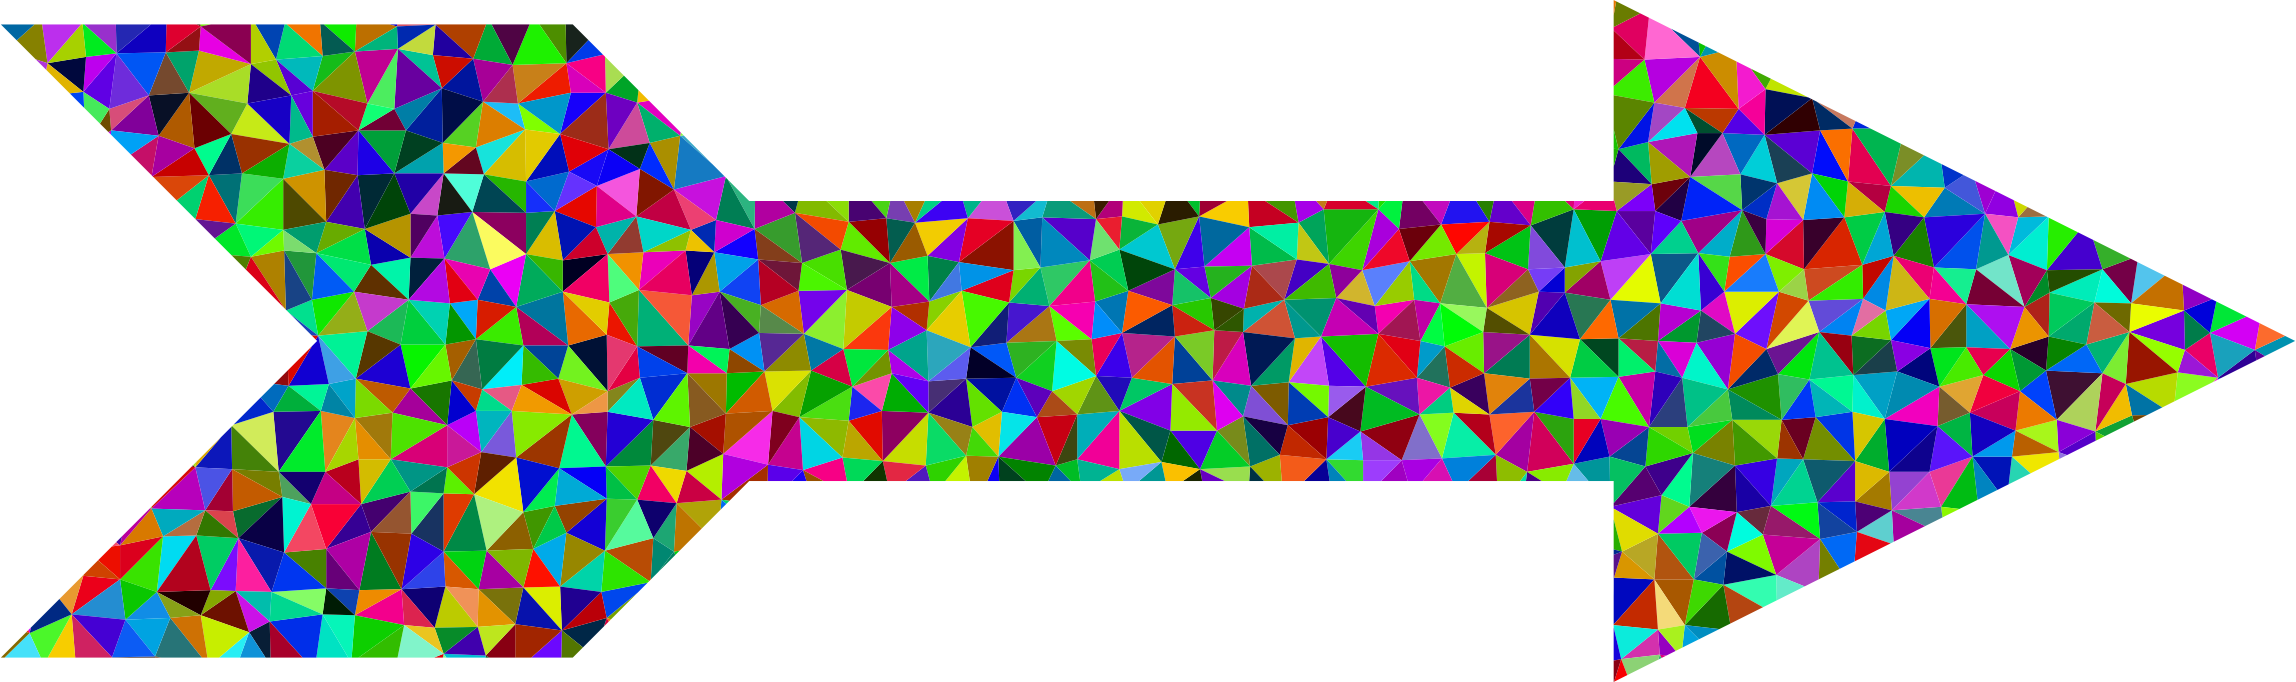 Prismatic Low Poly Arrow by GDJ